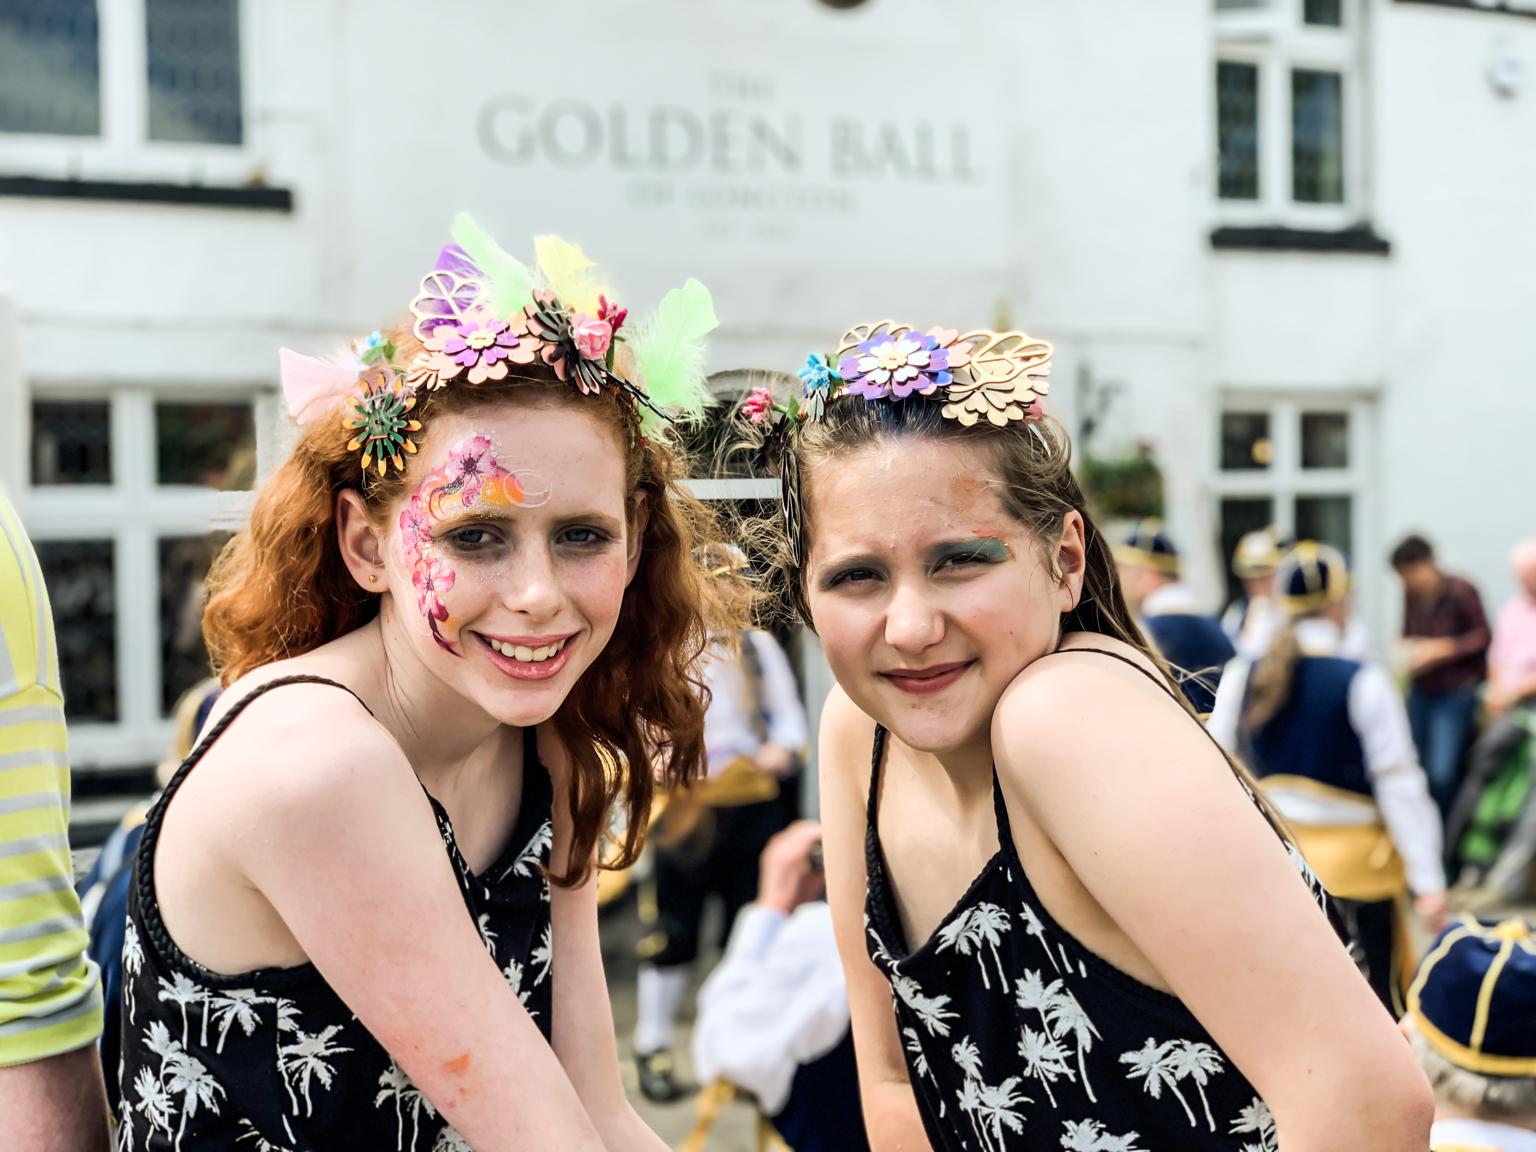 20190526_Golden Ball Spring Fest_83.jpg